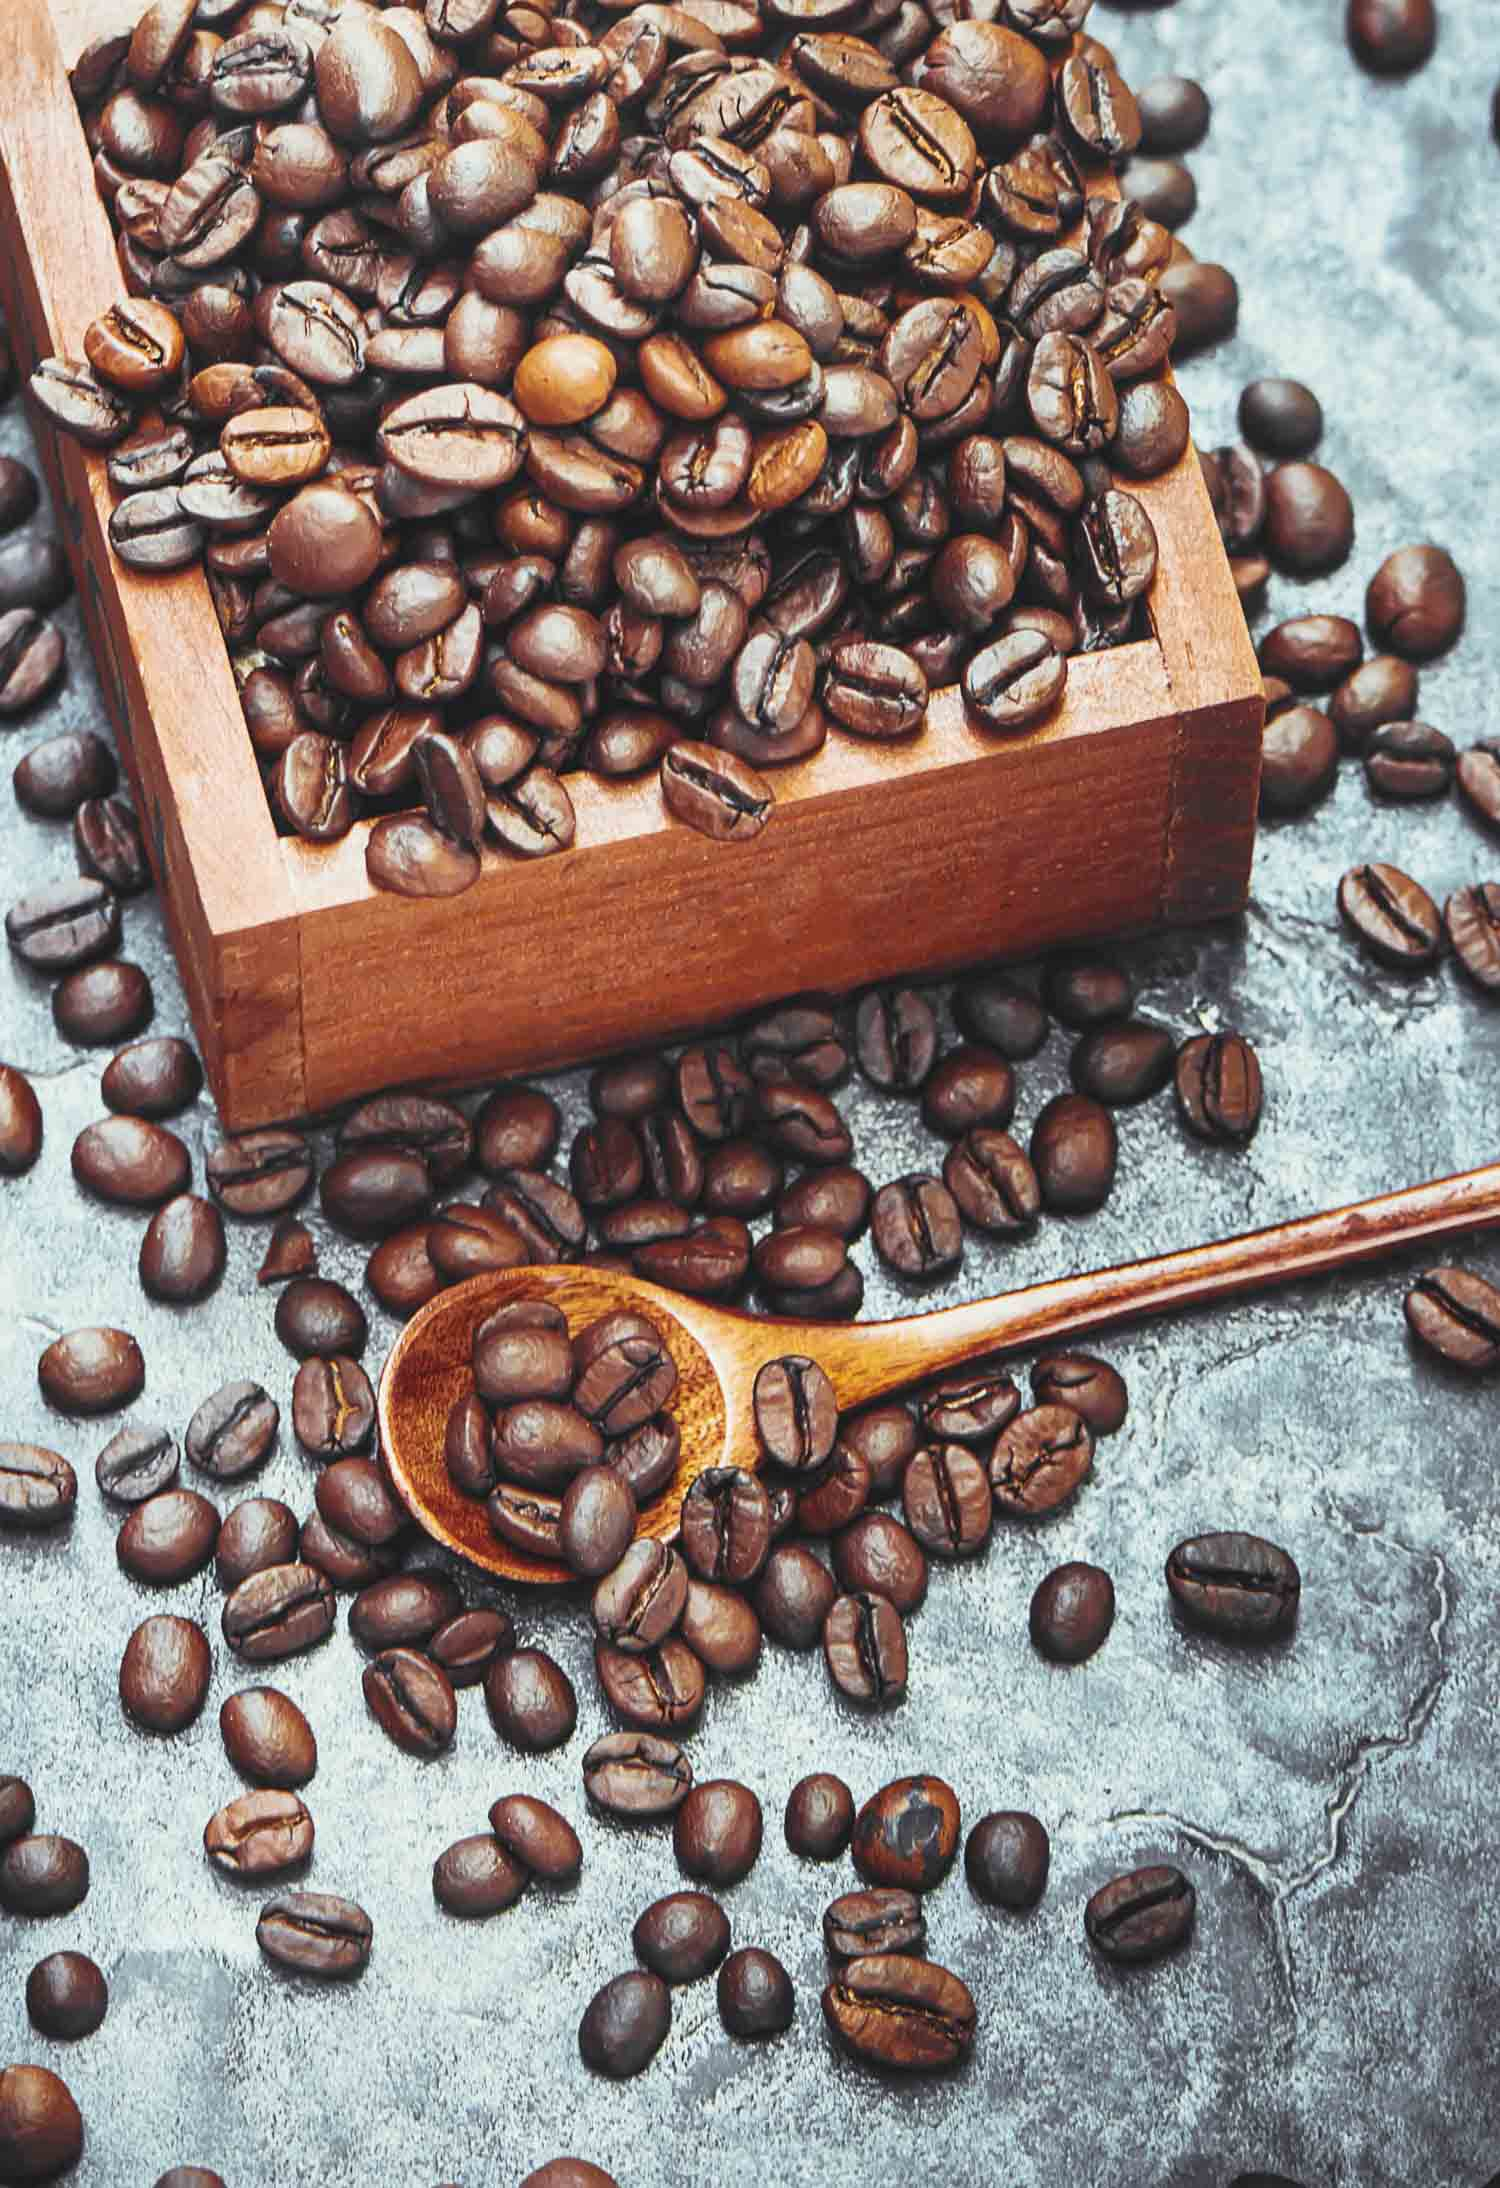 coffee beans on a metallic background